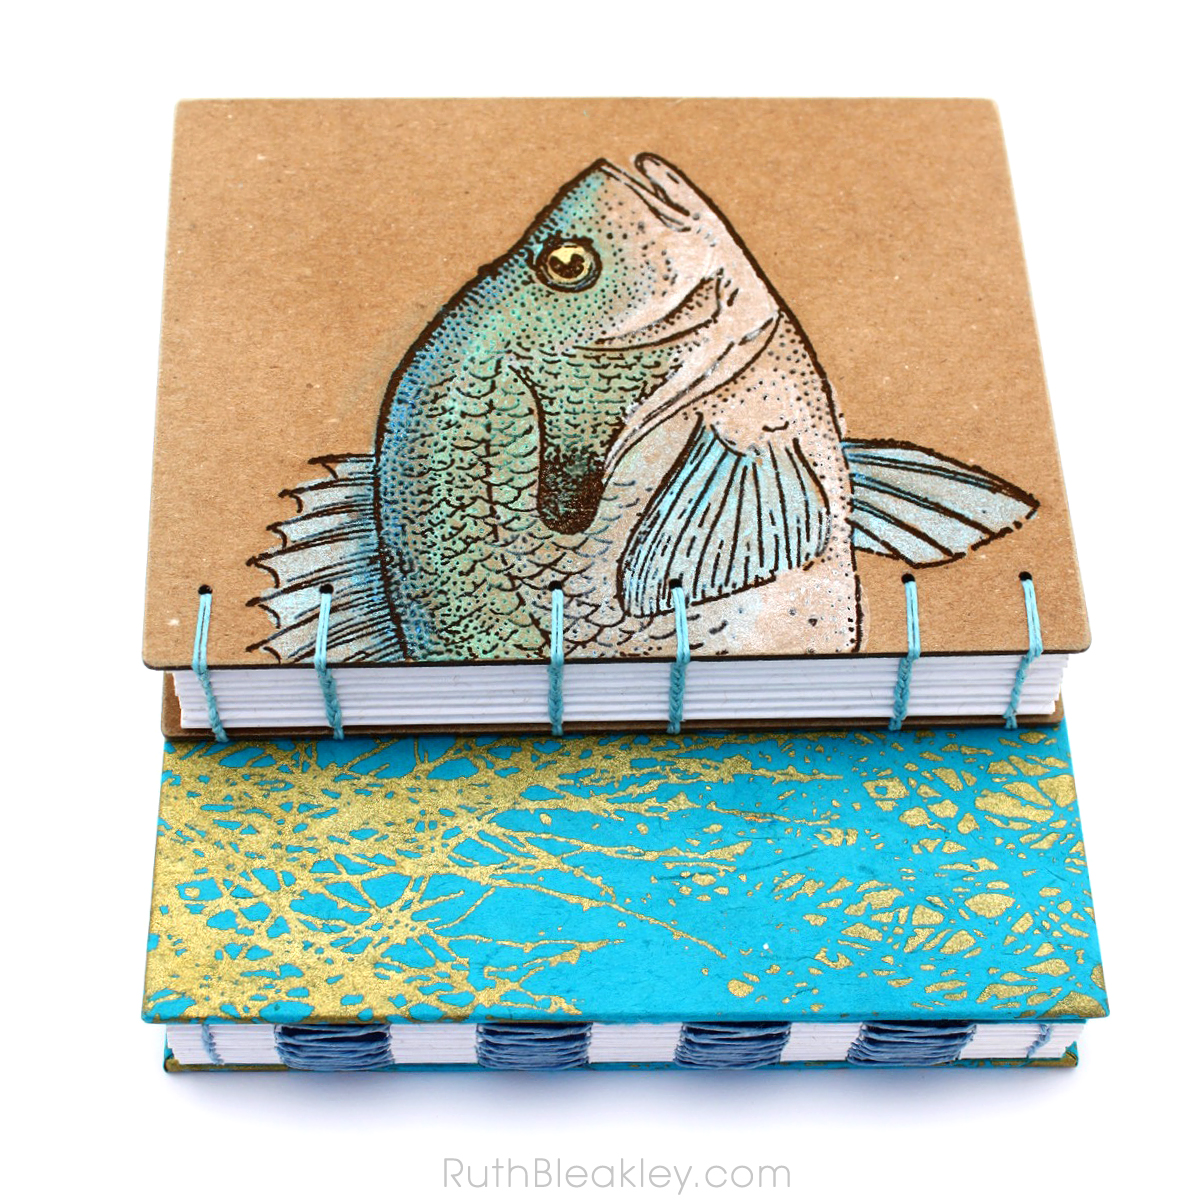 Two Journals handmade by Florida bookbinder Ruth Bleakley - fish and aqua branches